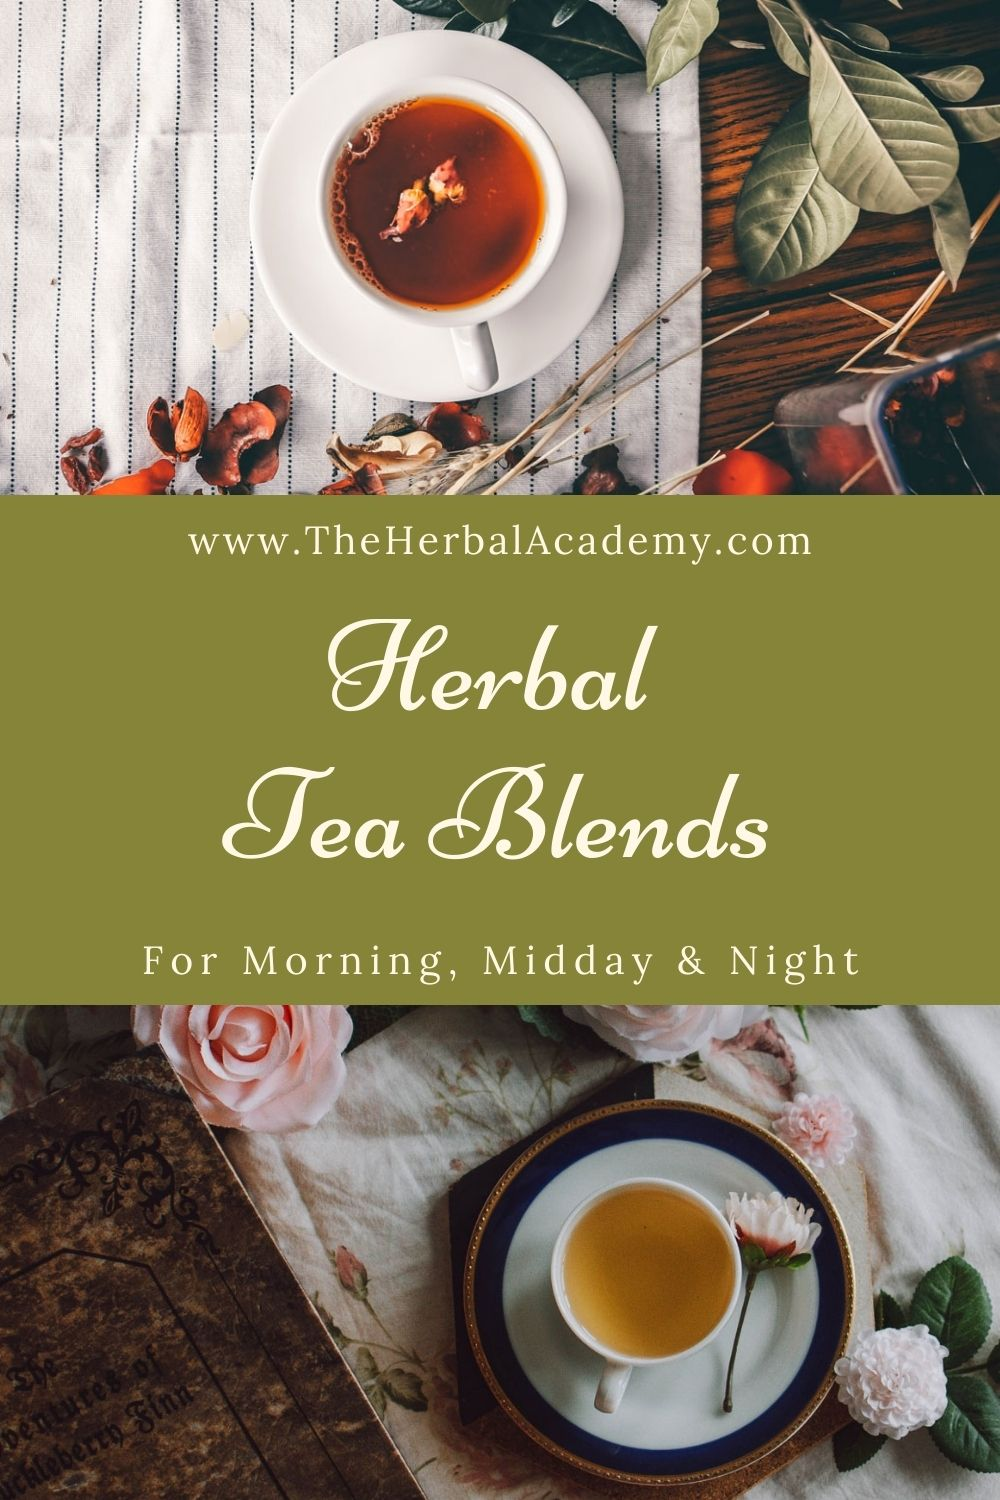 Herbal tea blends Pinterest graphic